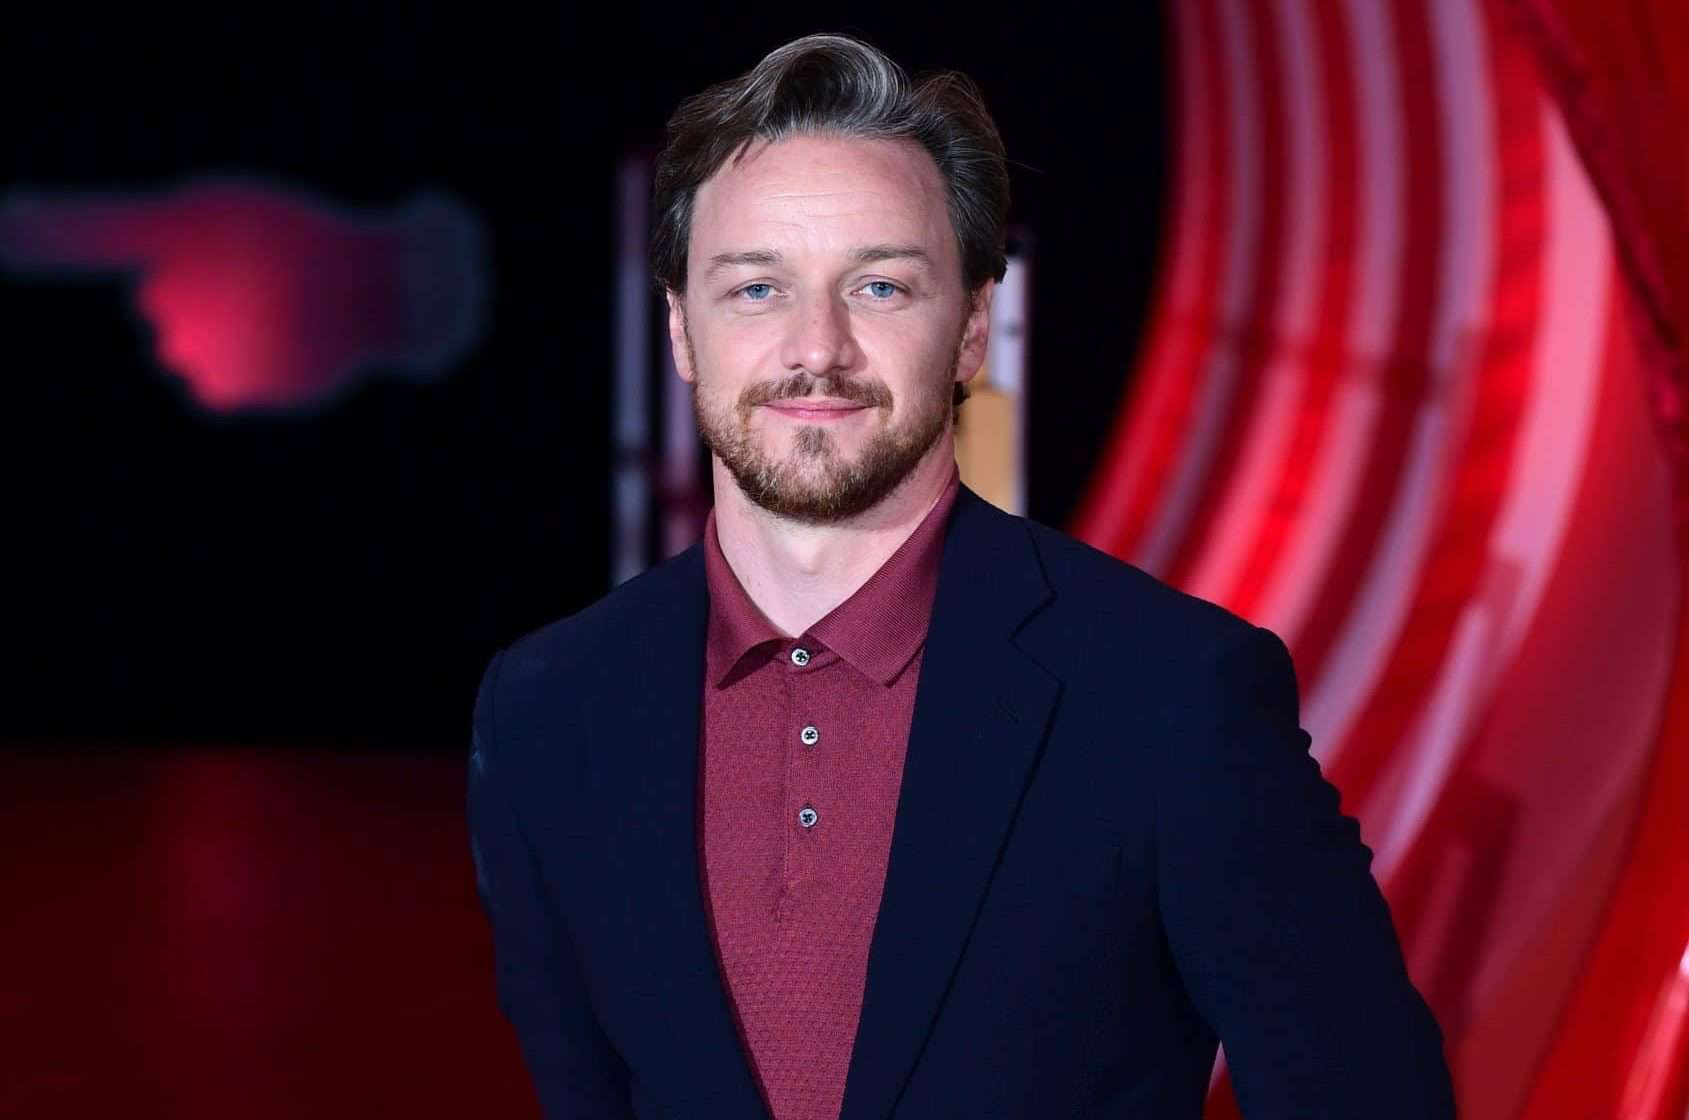 James McAvoy donates £257,000 to NHS medics' PPE crowdfunding appeal